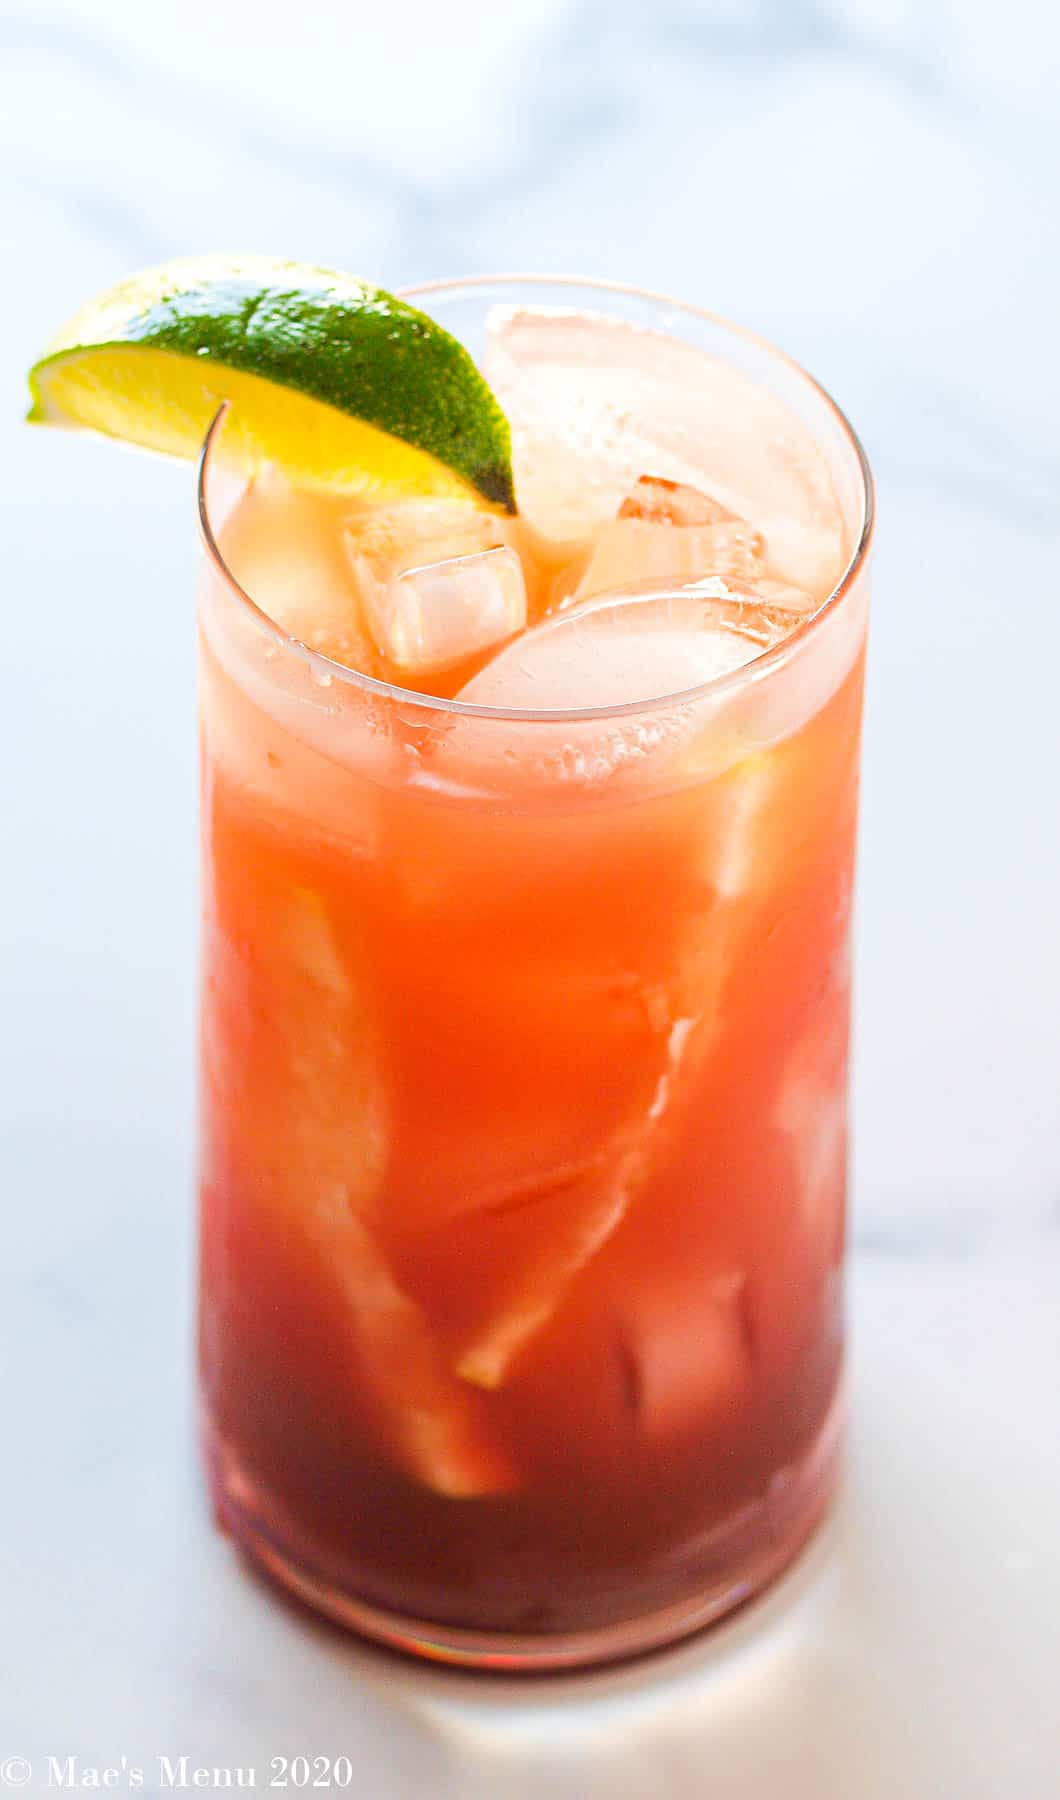 An up-close length-wise shot of a glass of pomegranate sea breeze